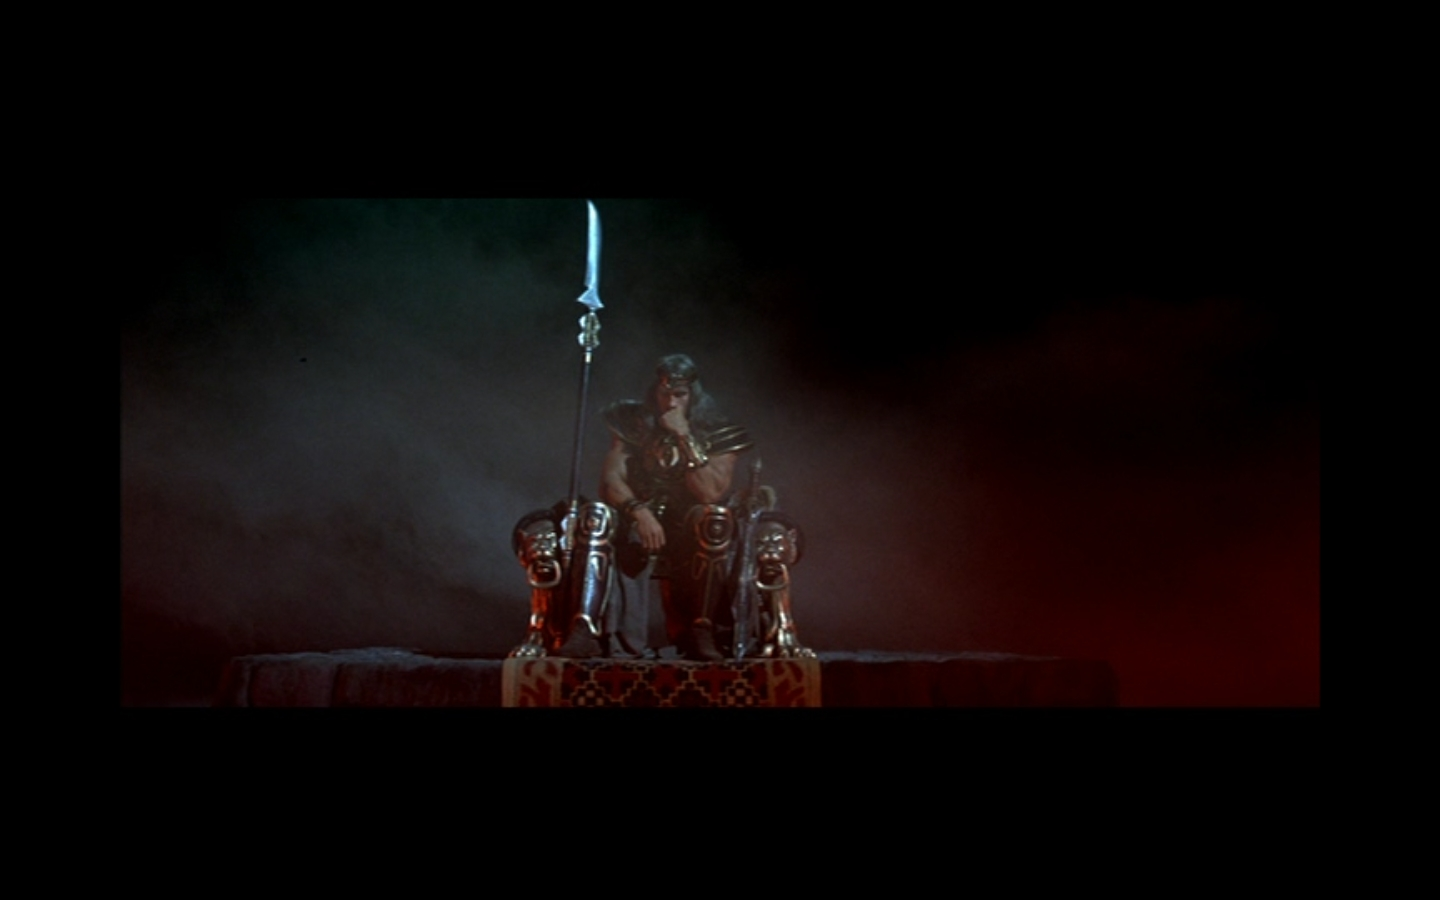 Conan The Barbarian Wallpapers 1600x1200 PelautsCom 1440x900